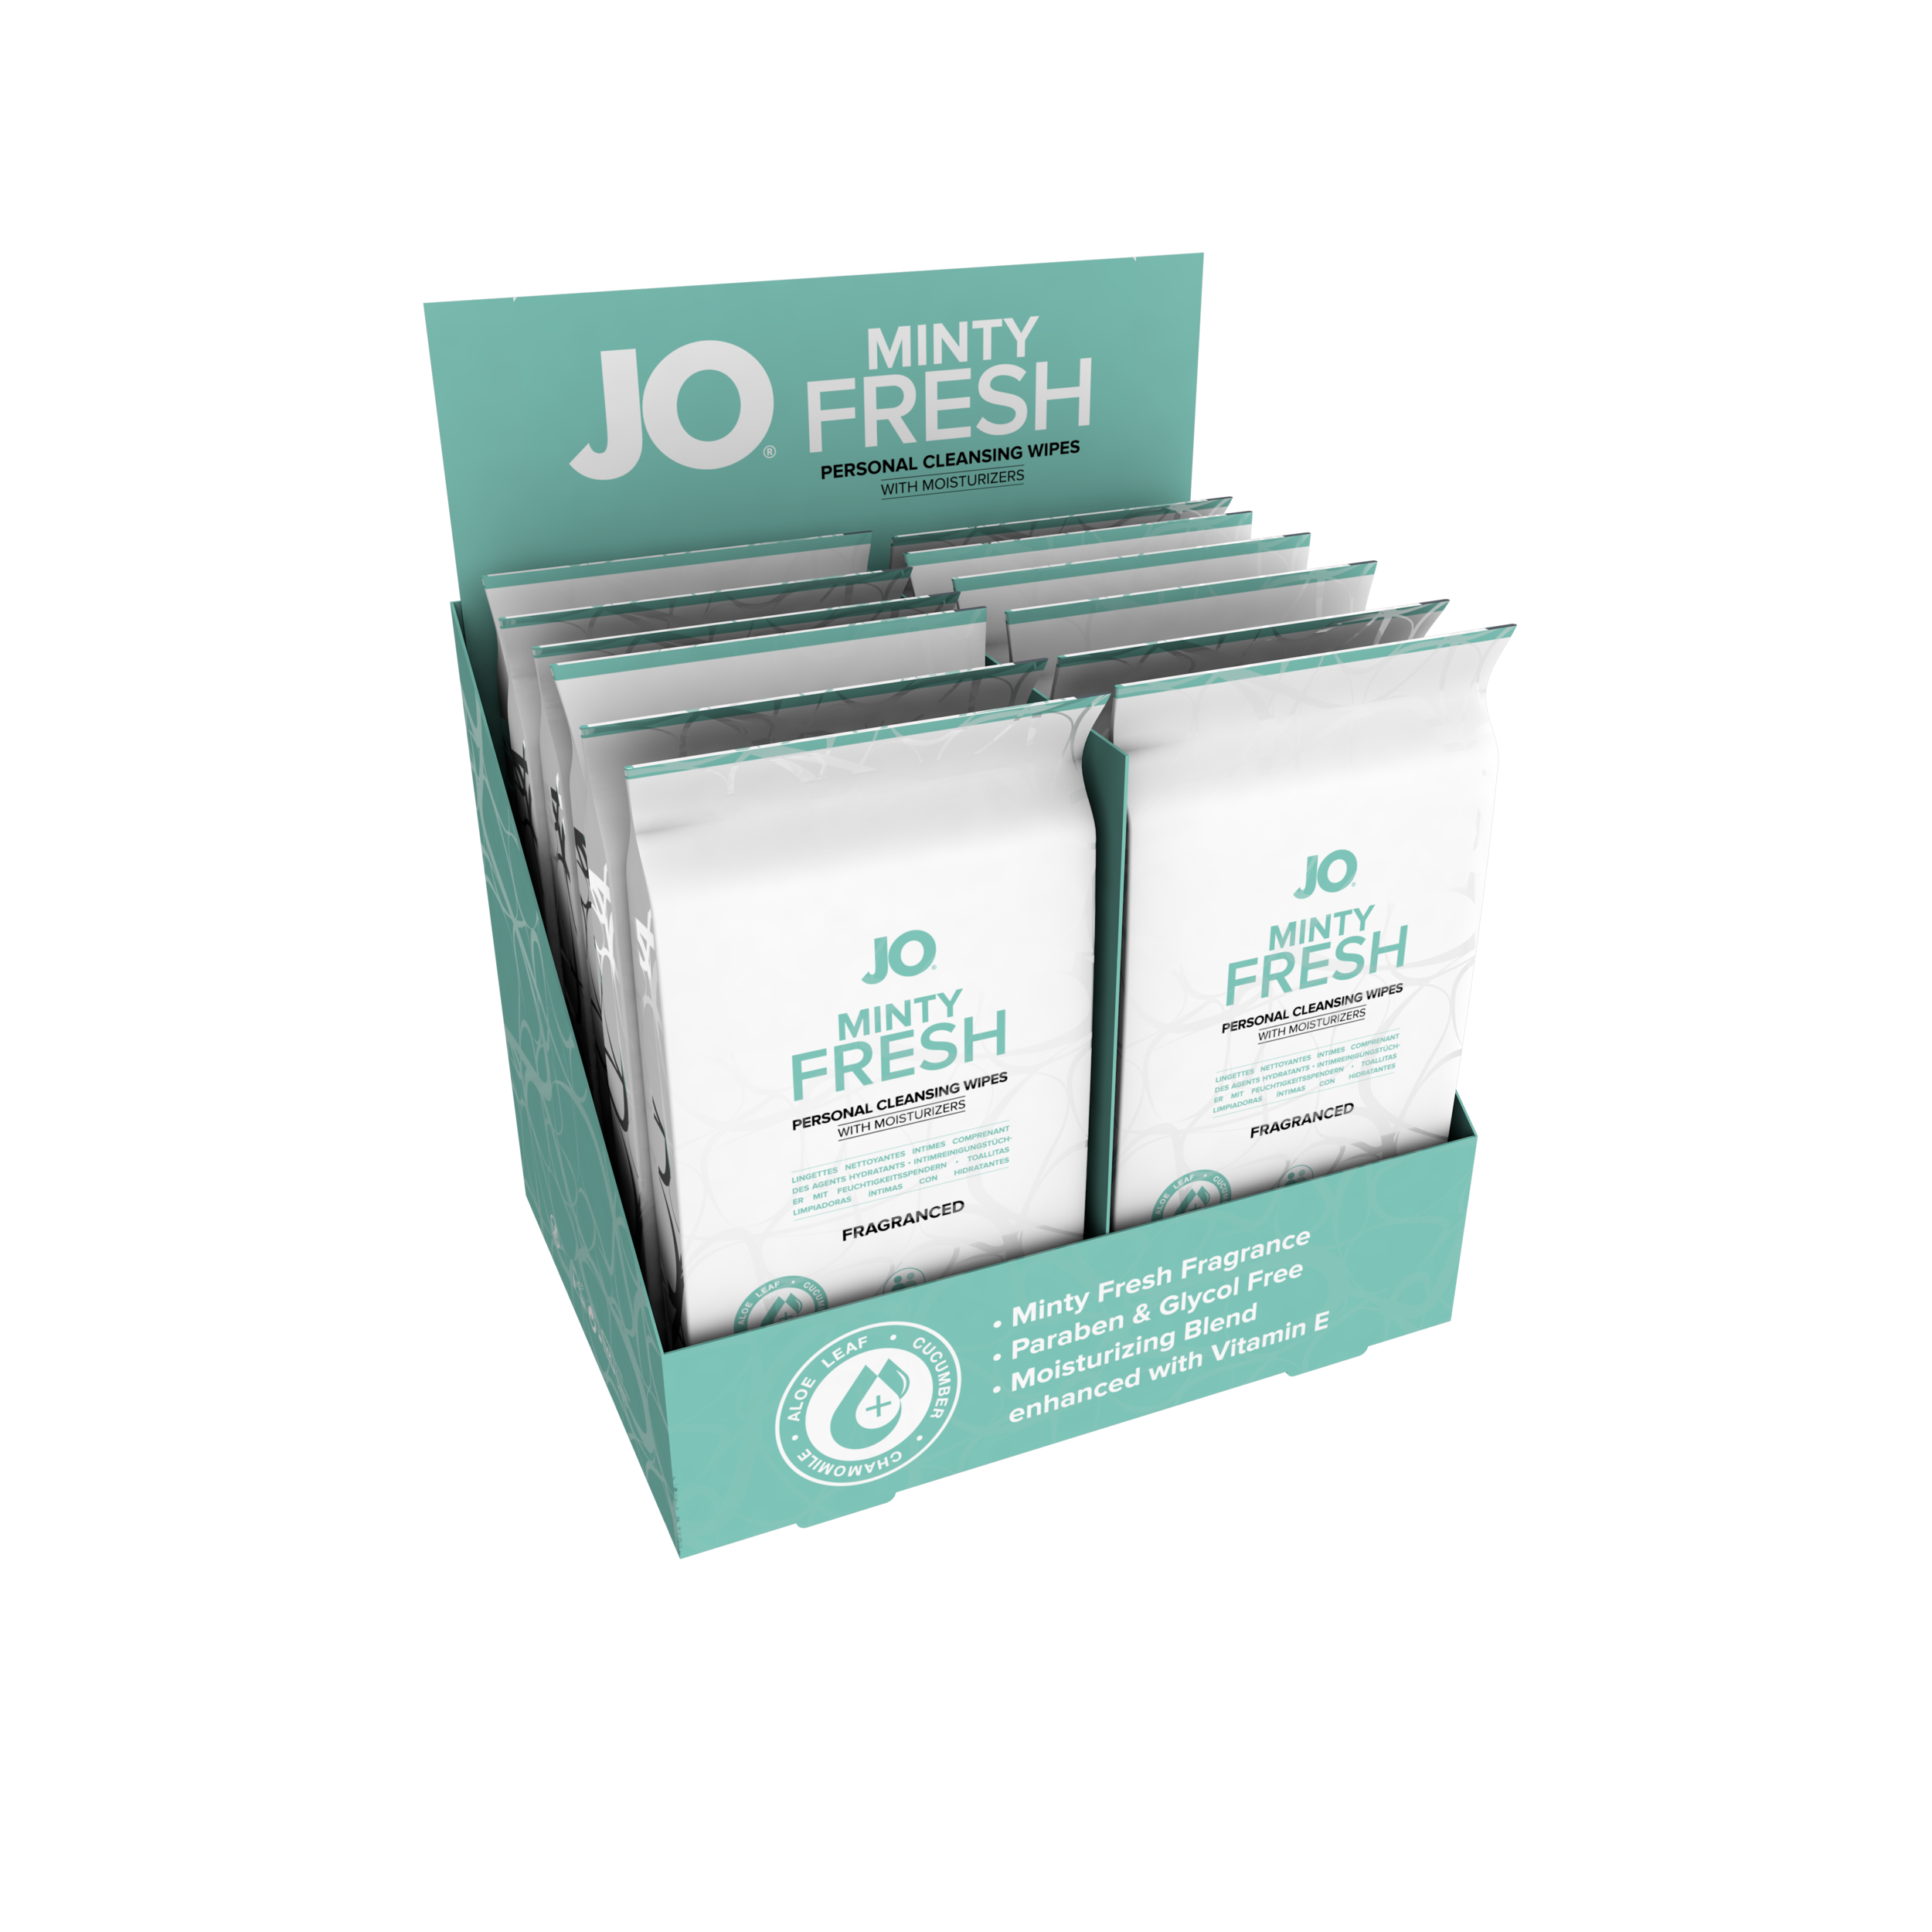 10223 - JO PERSONAL CLEANSING WIPES - MINTY FRESH - 12 pack (MOQ 12 units - Includes Counter Display) .png